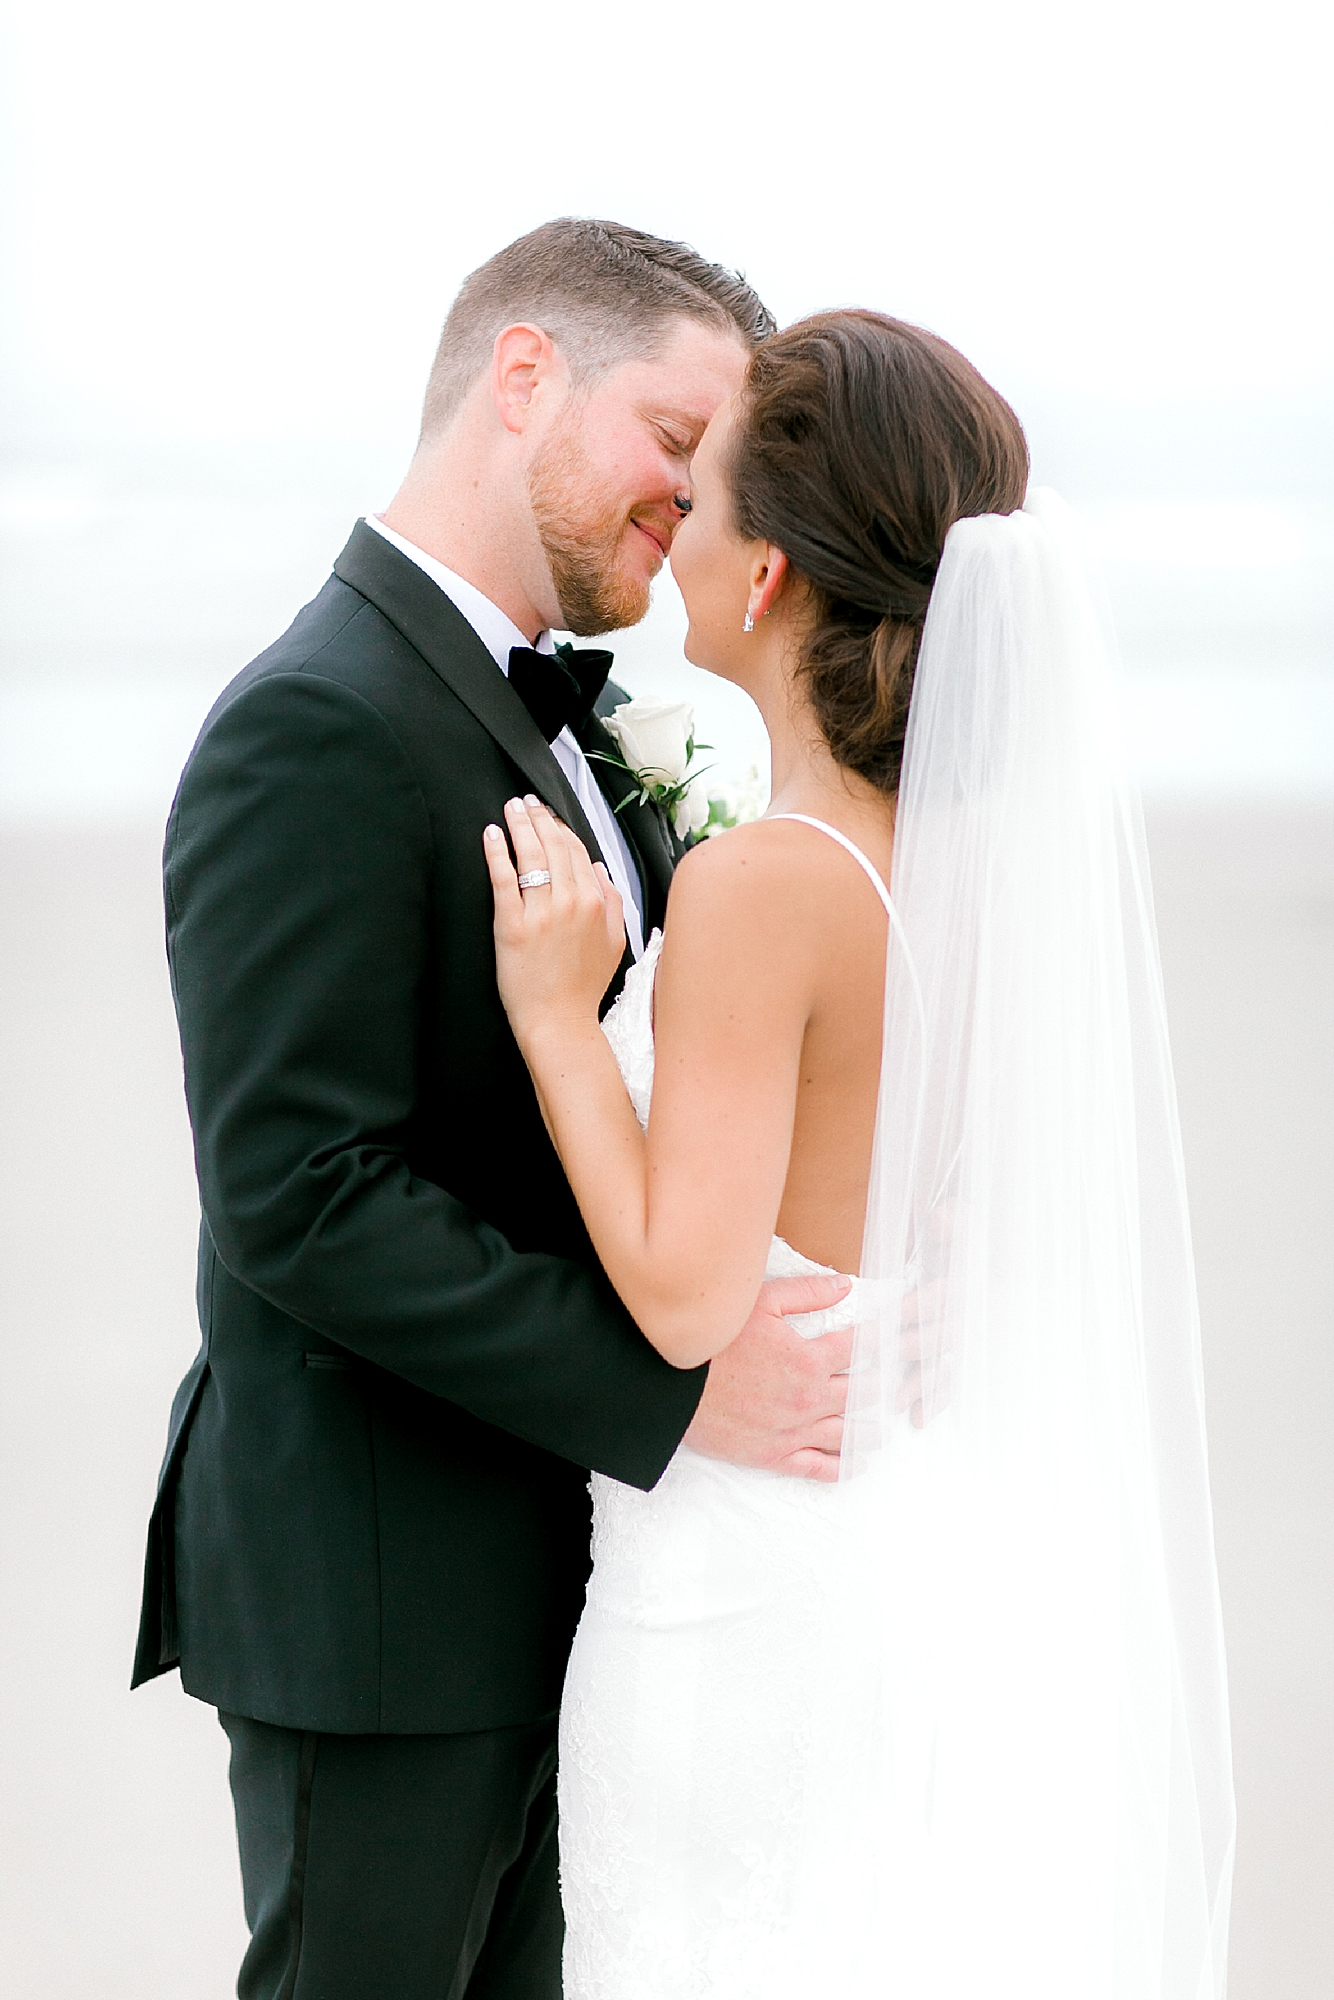 Candid and Stylish South Jersey Wedding Photography by Magdalena Studios 0043